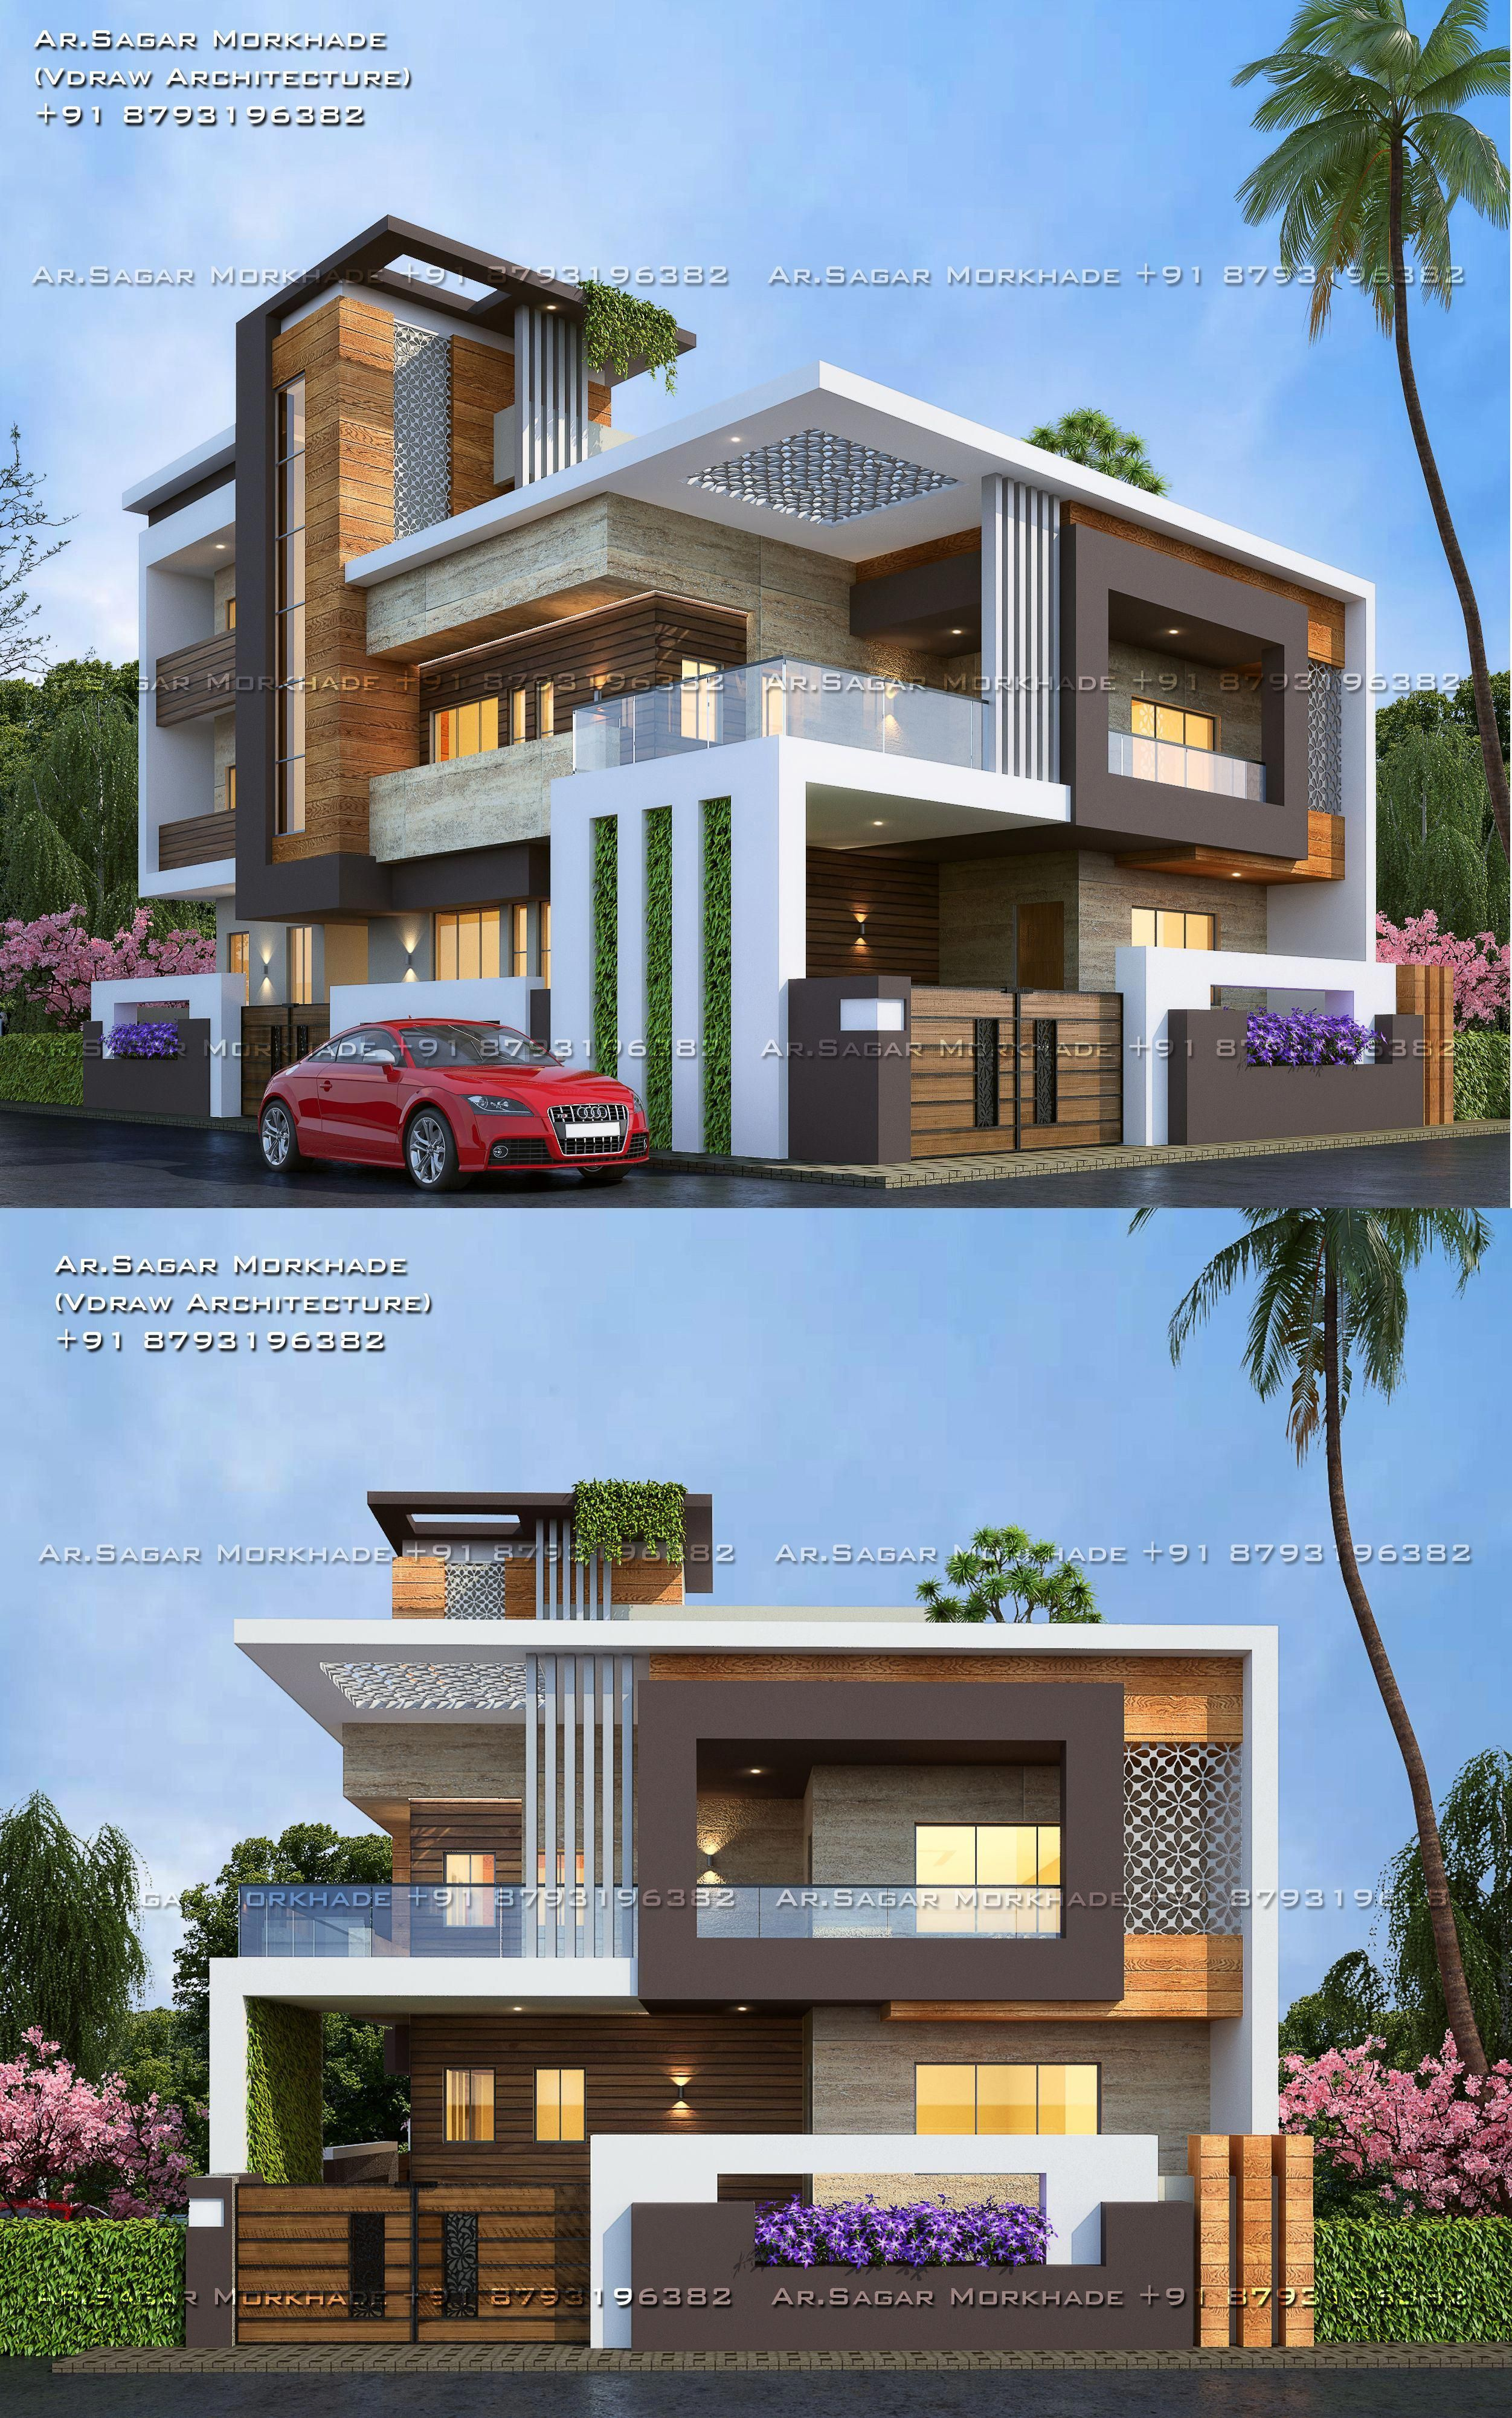 ғᴀɴᴄɪᴇsᴛ ᴀʀᴄʜɪᴛᴇᴄᴛᴜʀᴇ On Instagram How Do You Like This Home S Design Comment Below Modern House Facades House Front Design Modern Architecture House